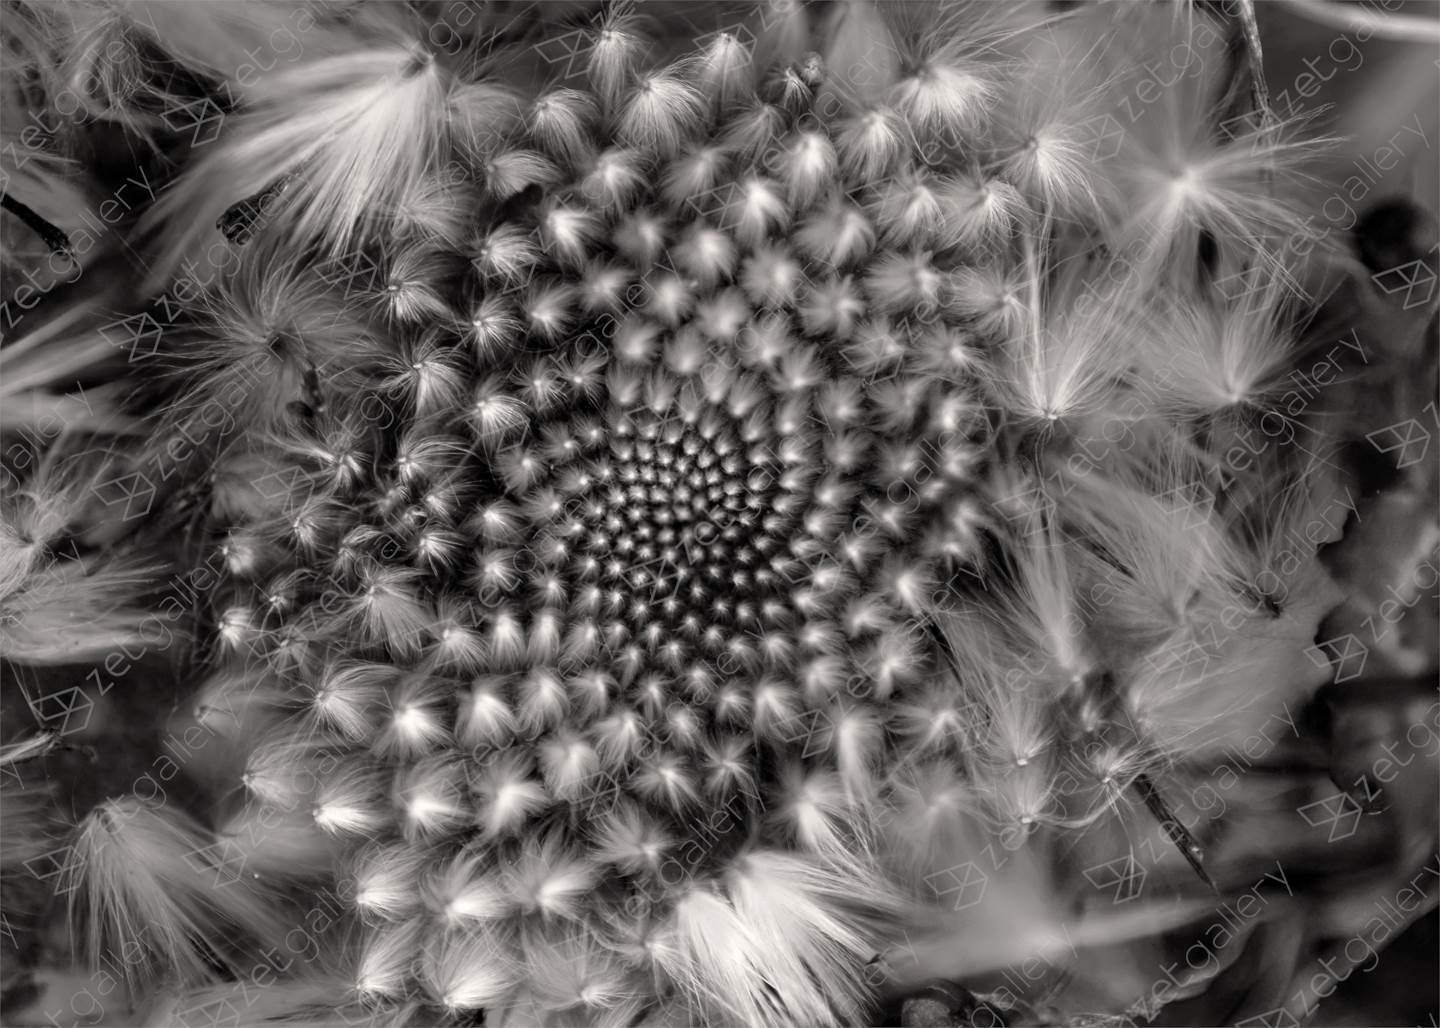 Fibonacci, original B&W Digital Photography by Fernando Pinho